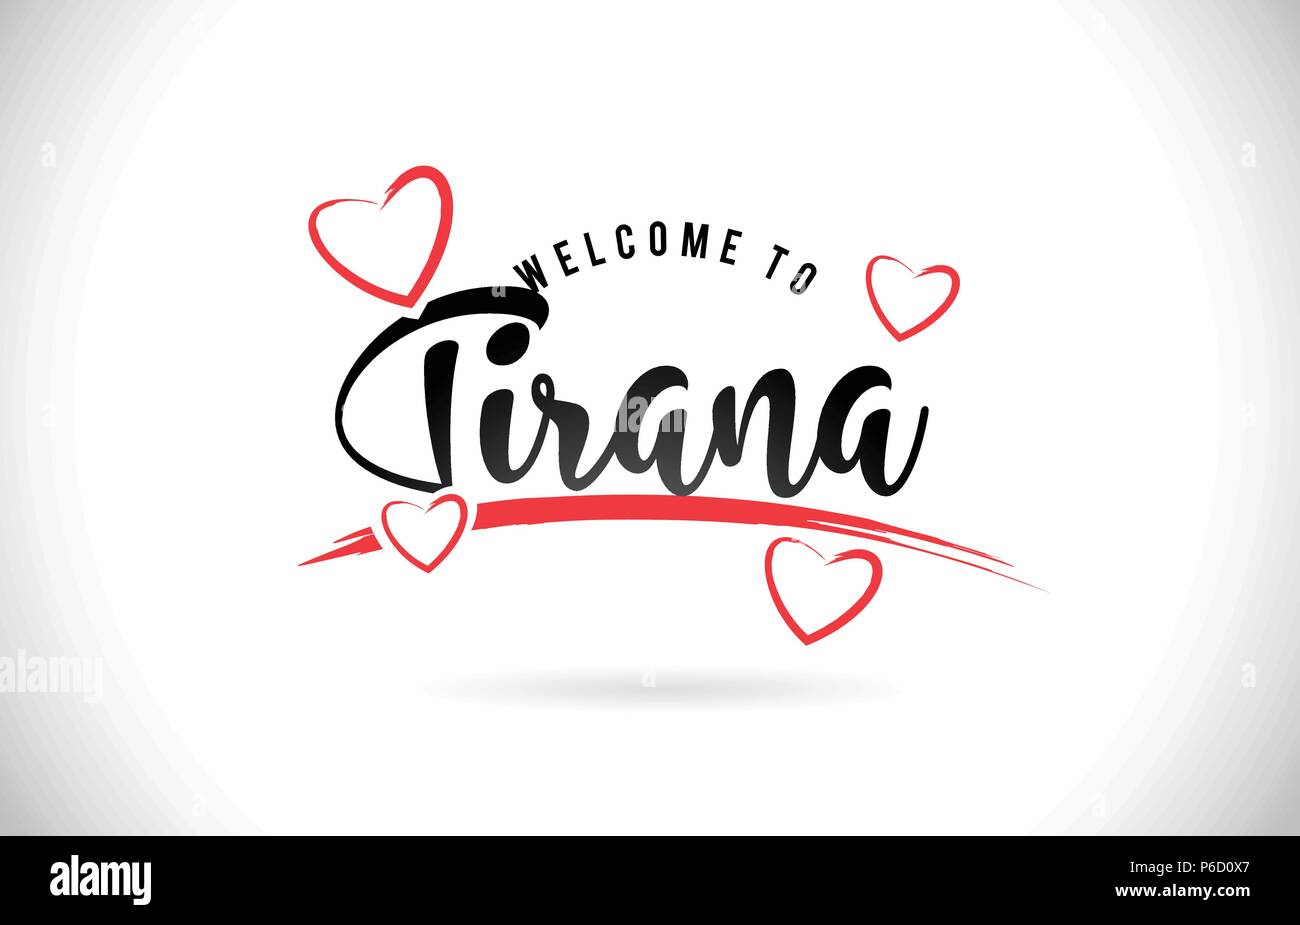 Tirana Welcome To Word Text with Handwritten Font and Red Love Hearts Vector Image Illustration Eps. - Stock Vector